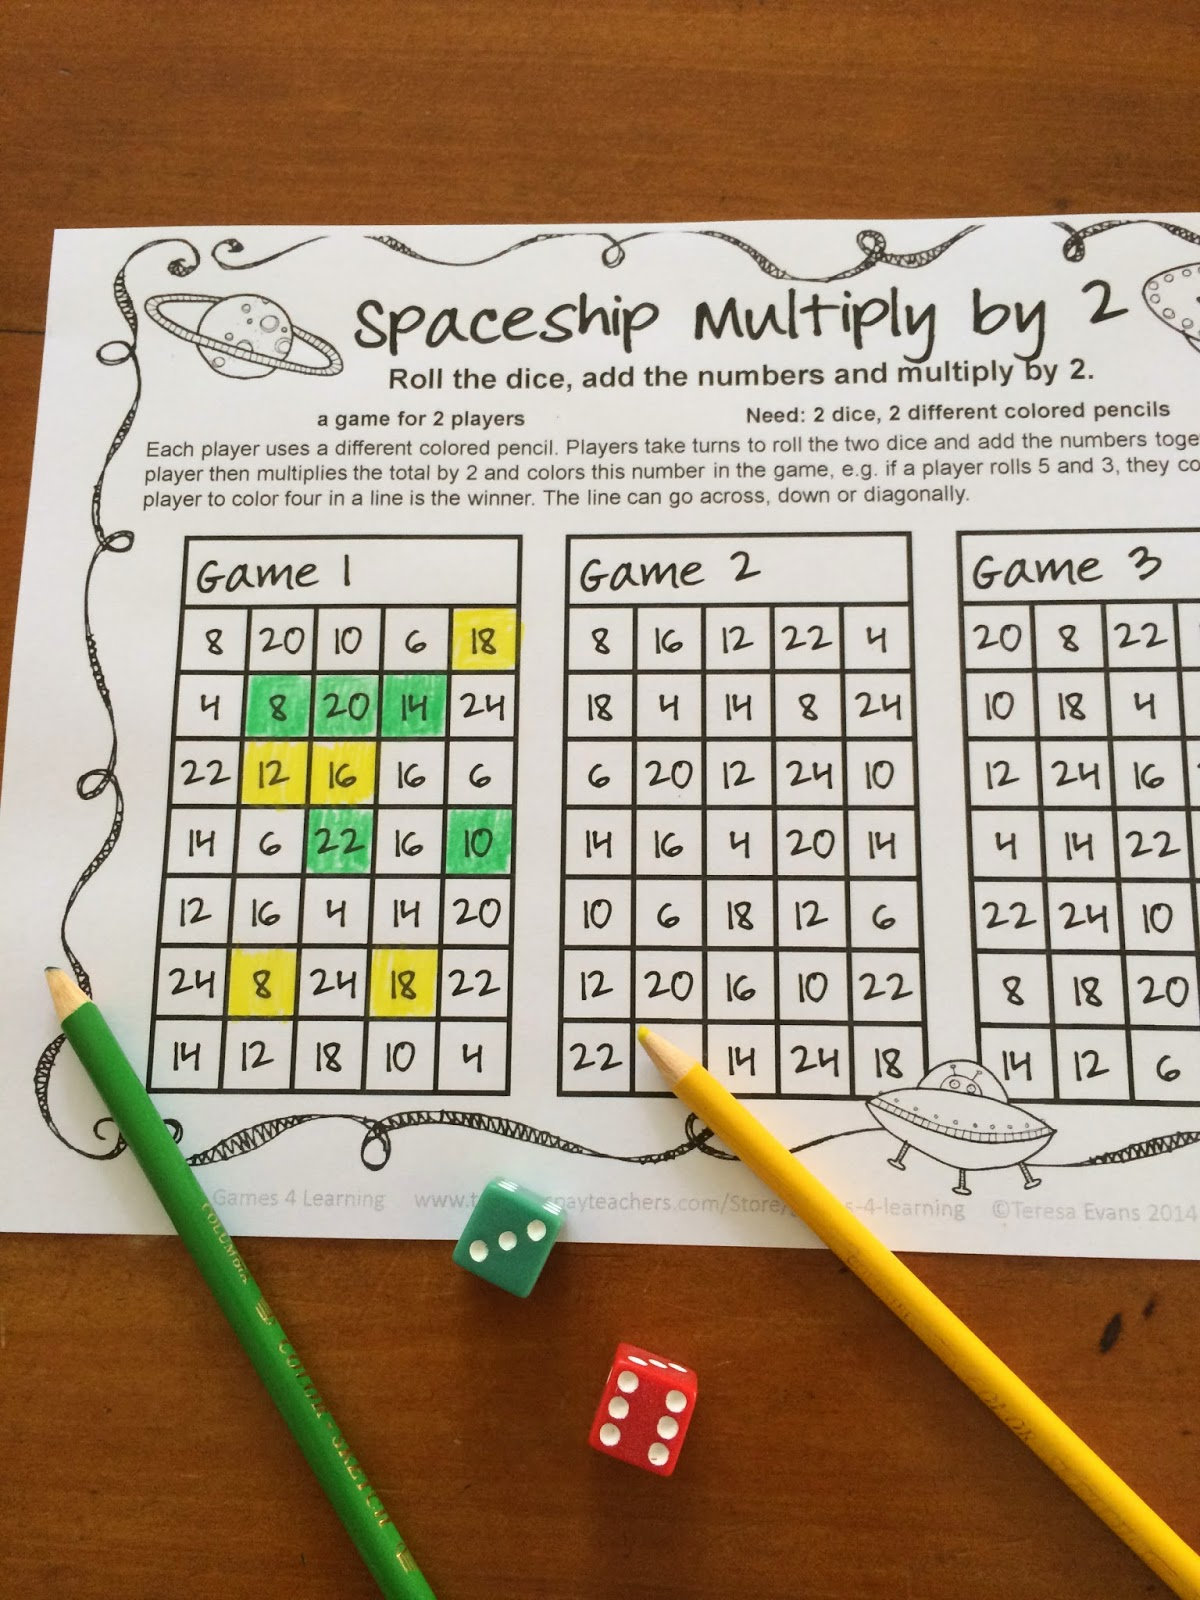 Fun Games 4 Learning Multiplication Fun